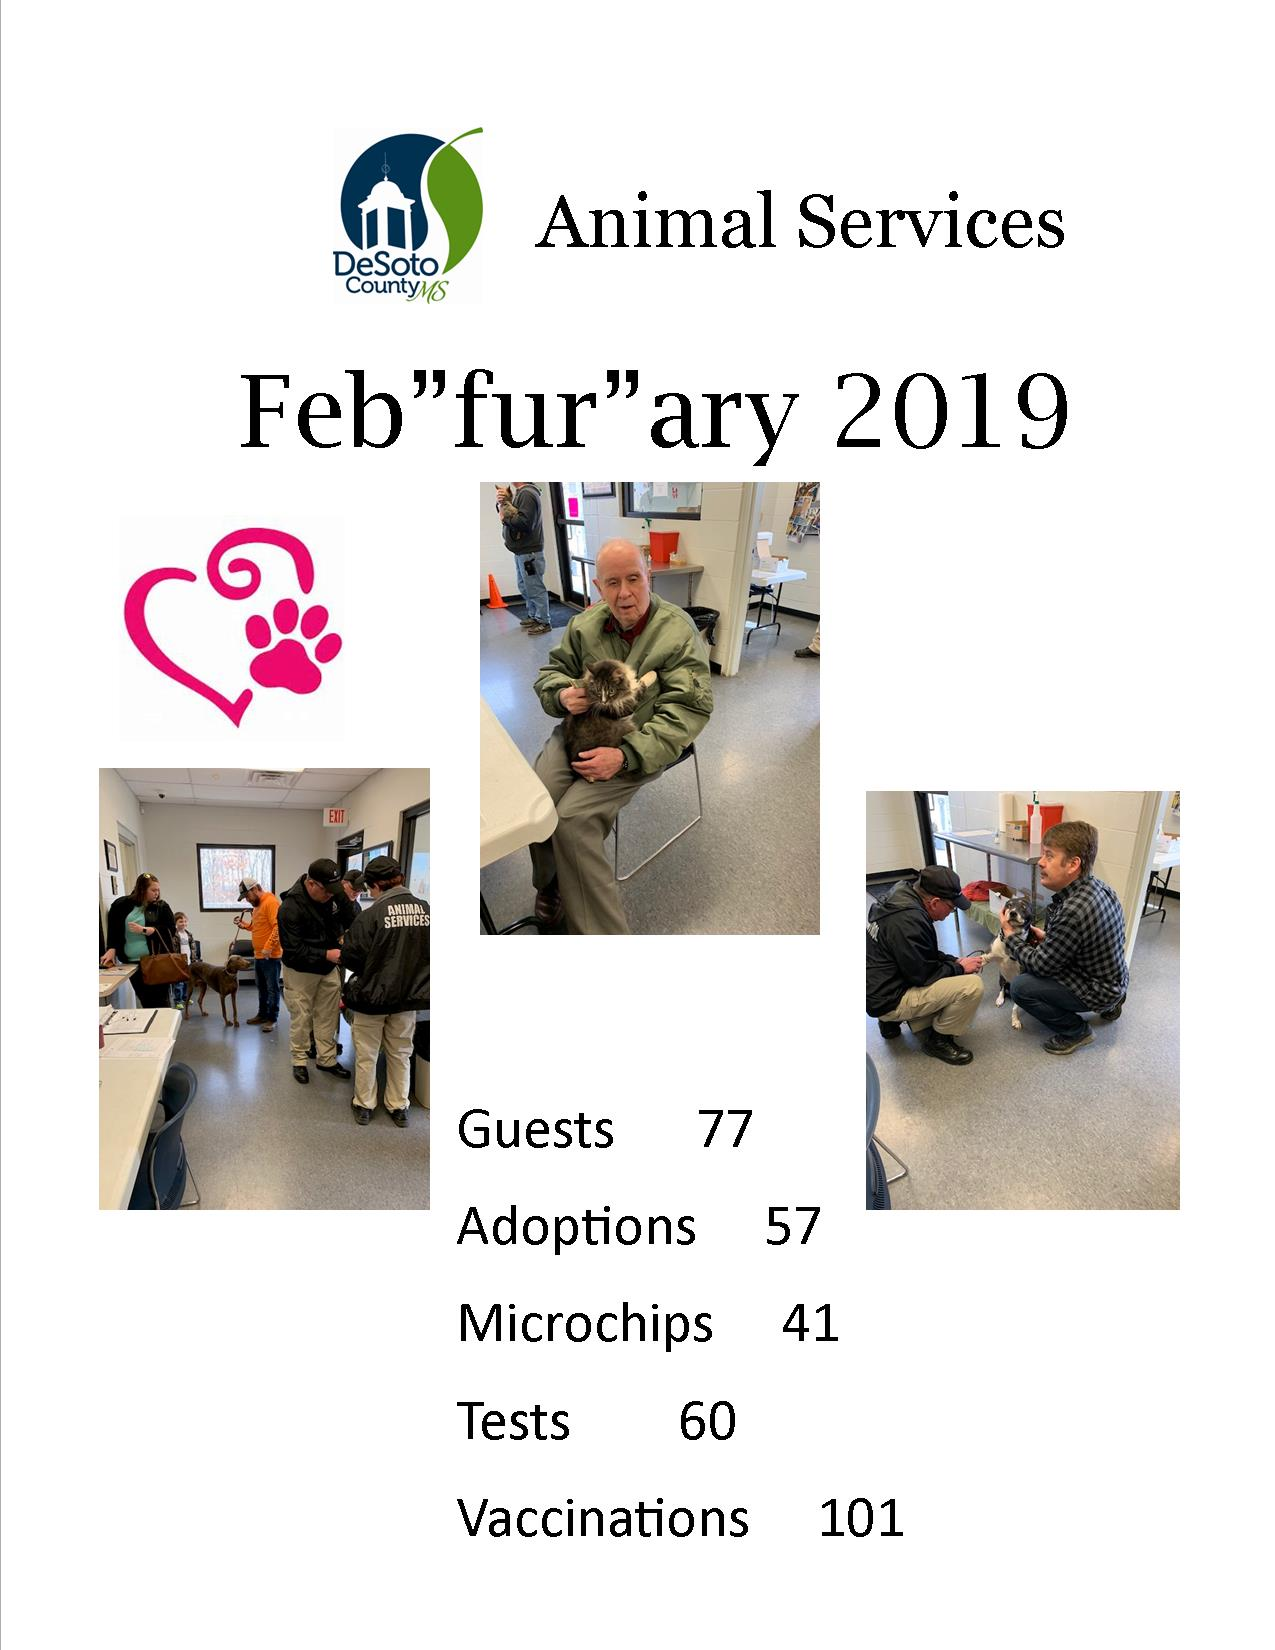 Feb fur ary results 2019